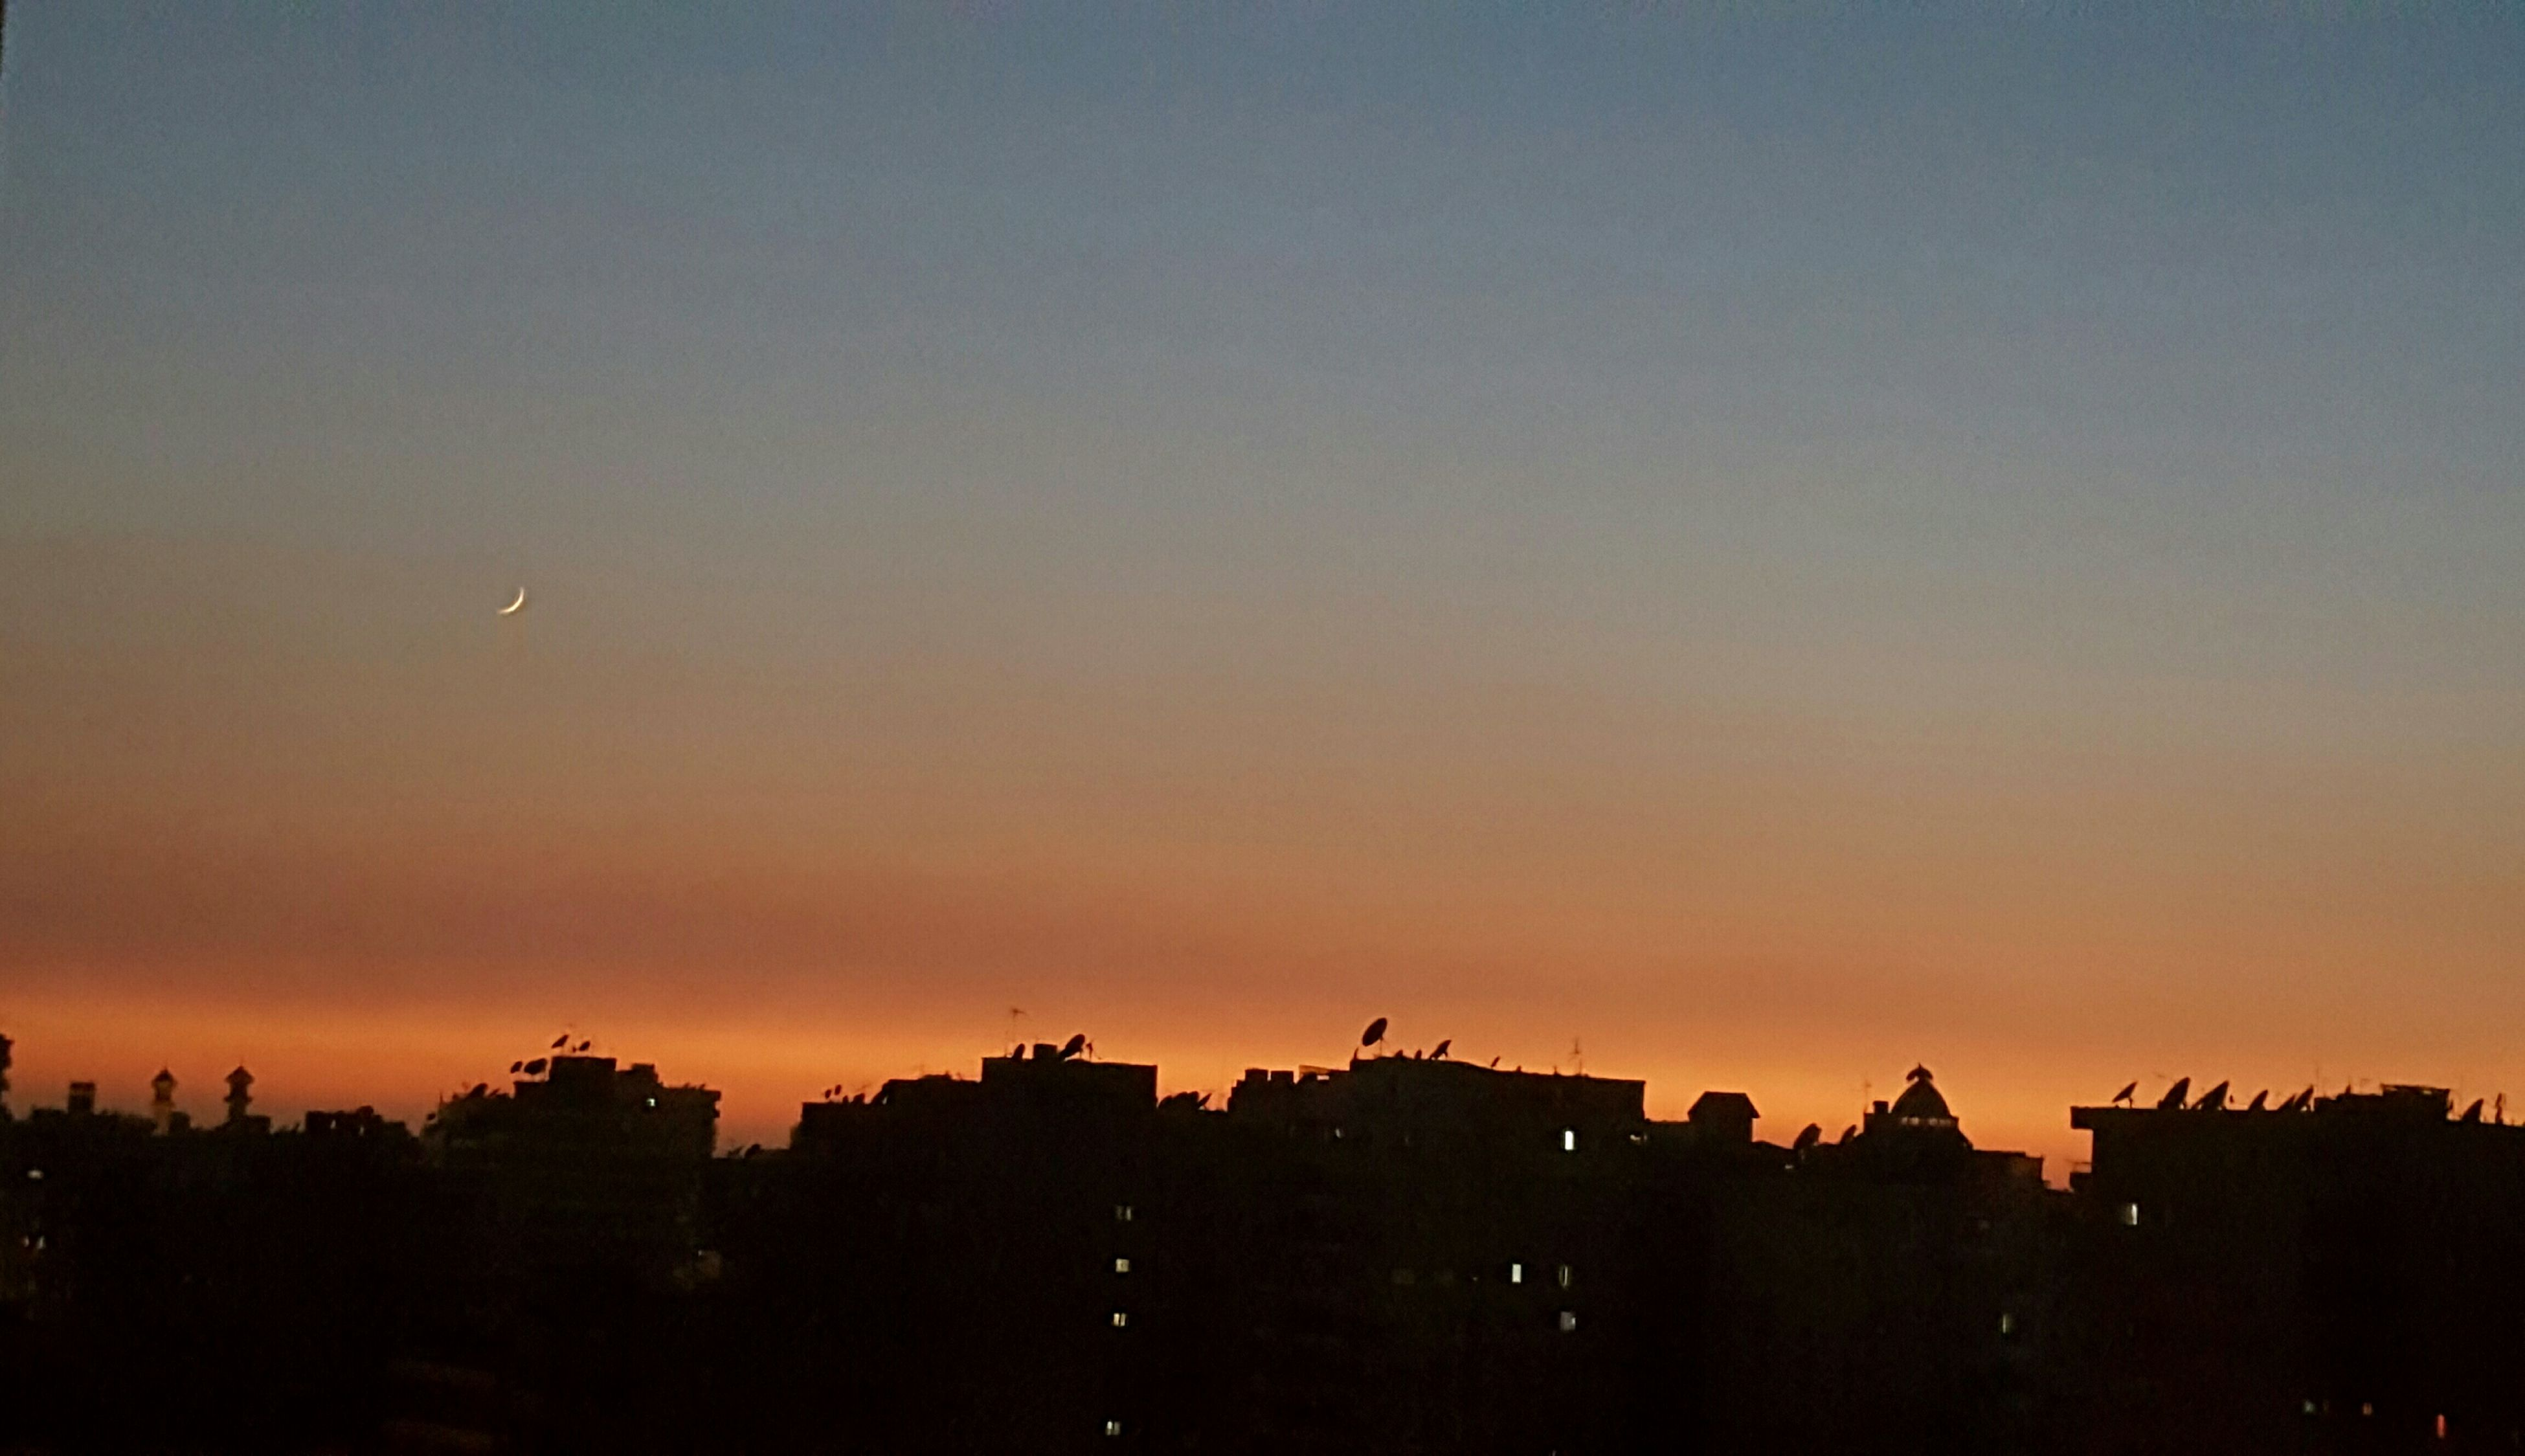 sunset, architecture, built structure, building exterior, silhouette, sky, no people, outdoors, city, nature, tree, cityscape, beauty in nature, day